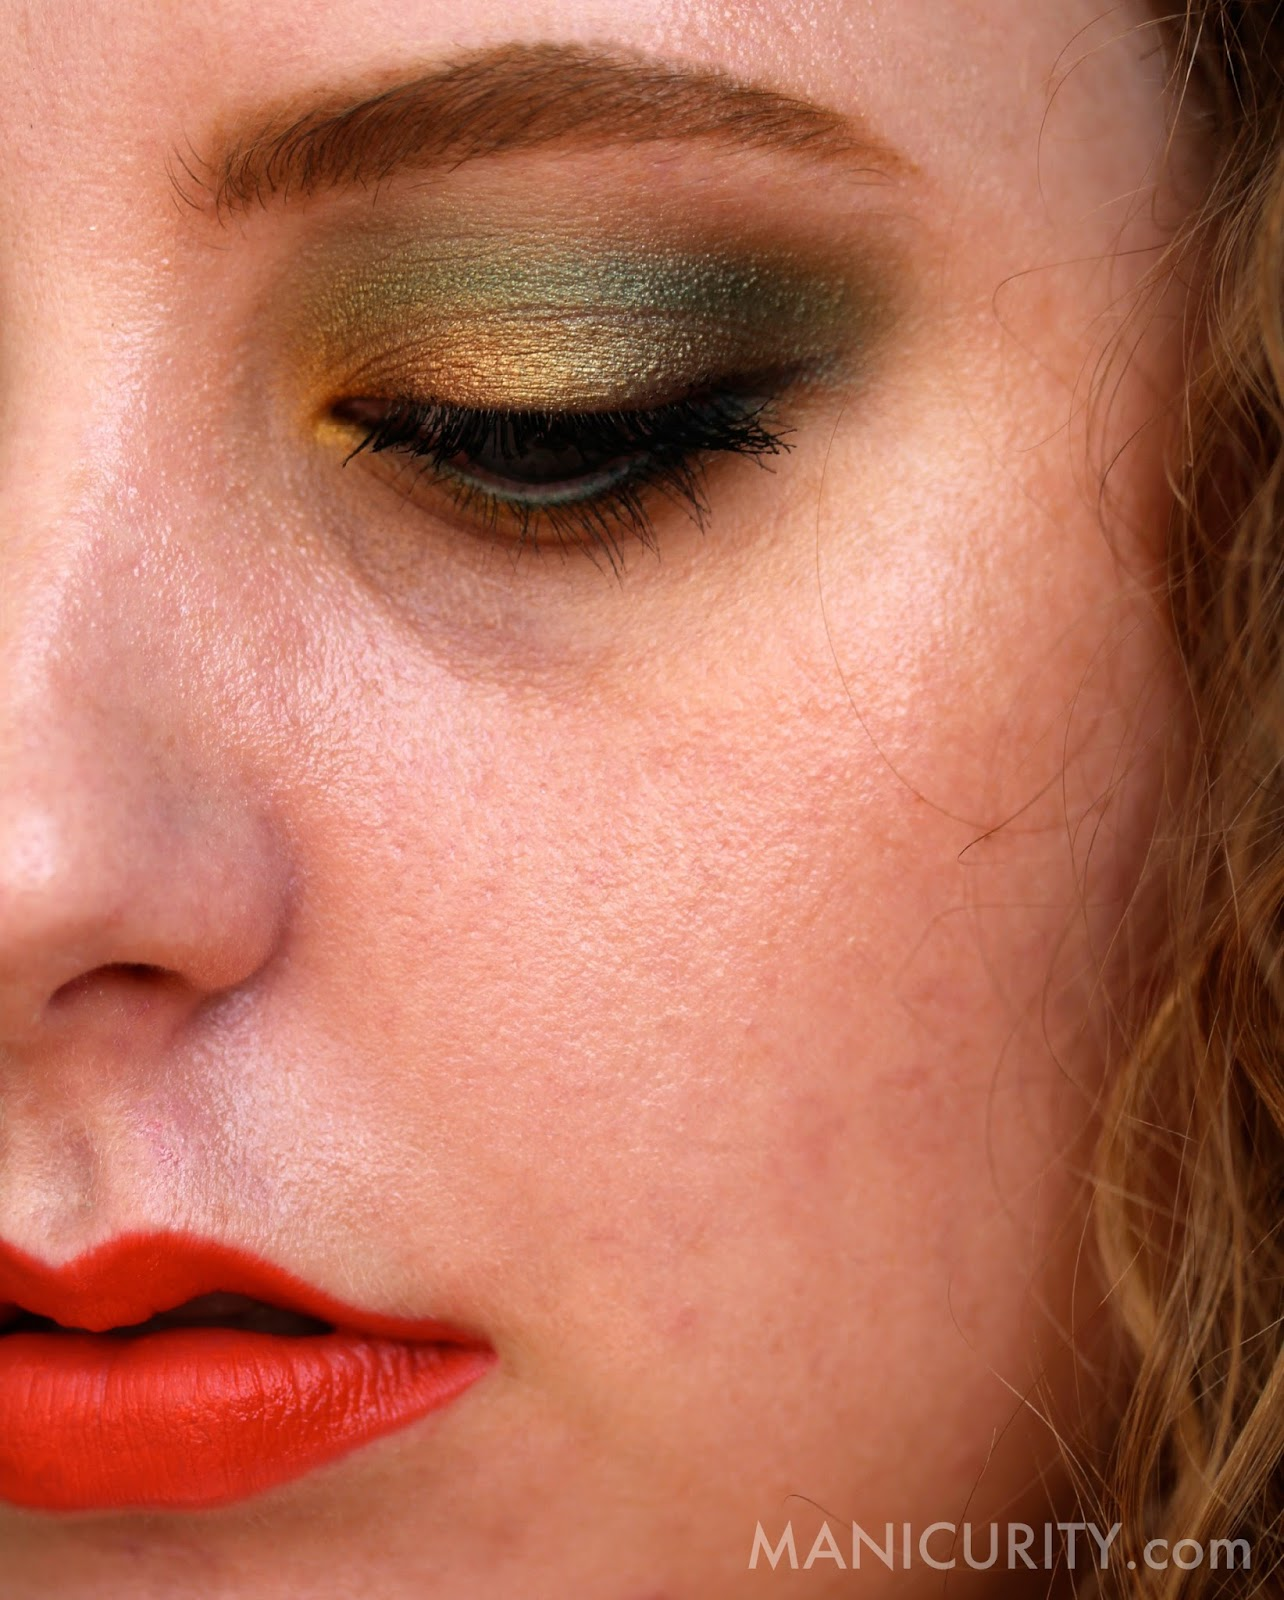 St. Paddy's 2014 Makeup Look - gold and green eye look with orange lips! | Manicurity.com